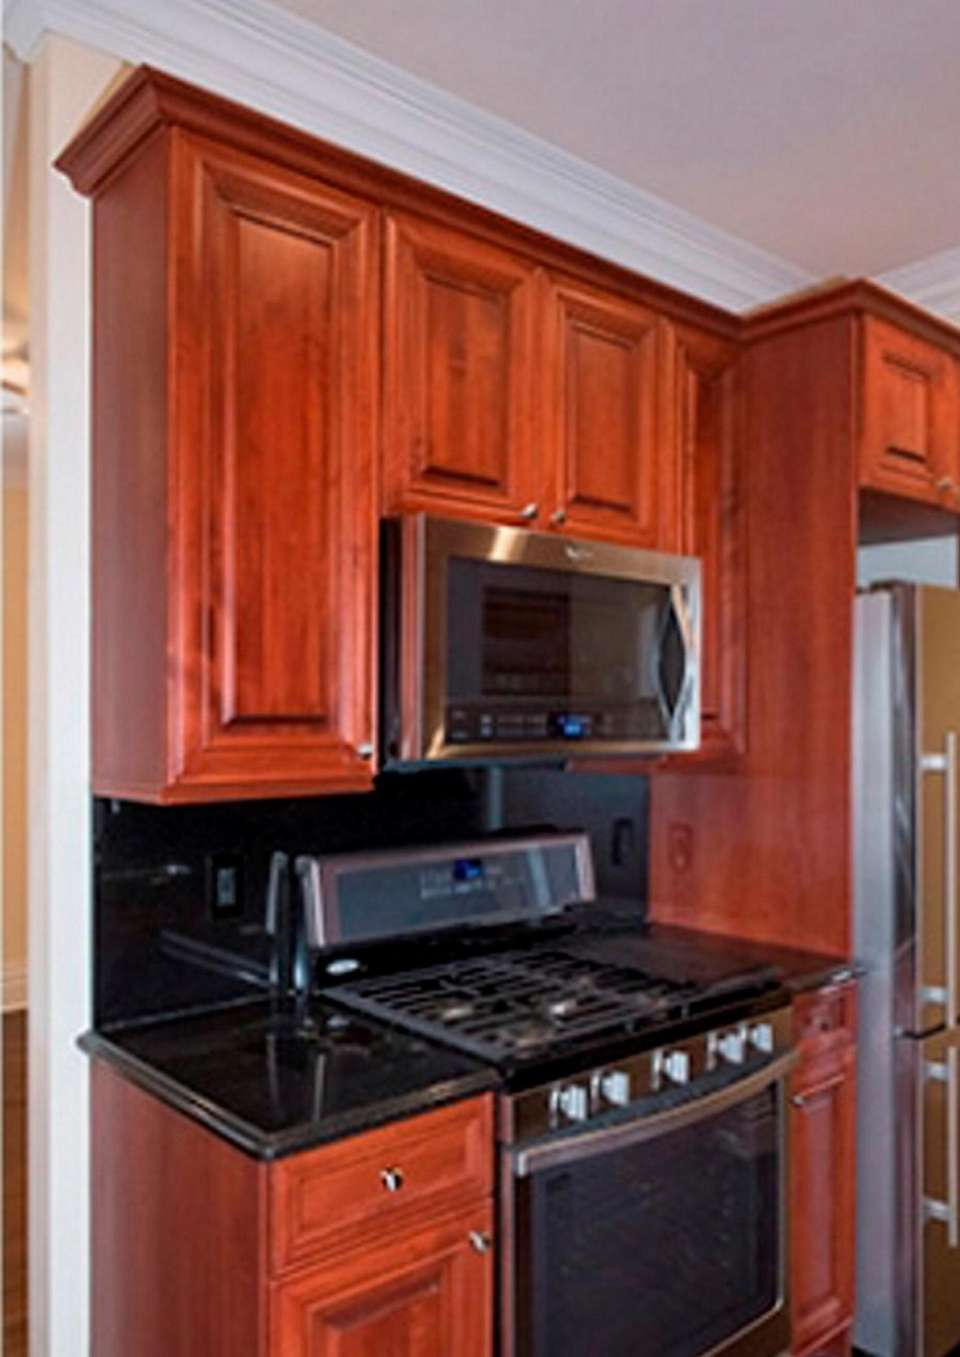 This one bedroom, one bathroom unit in Lynbrook